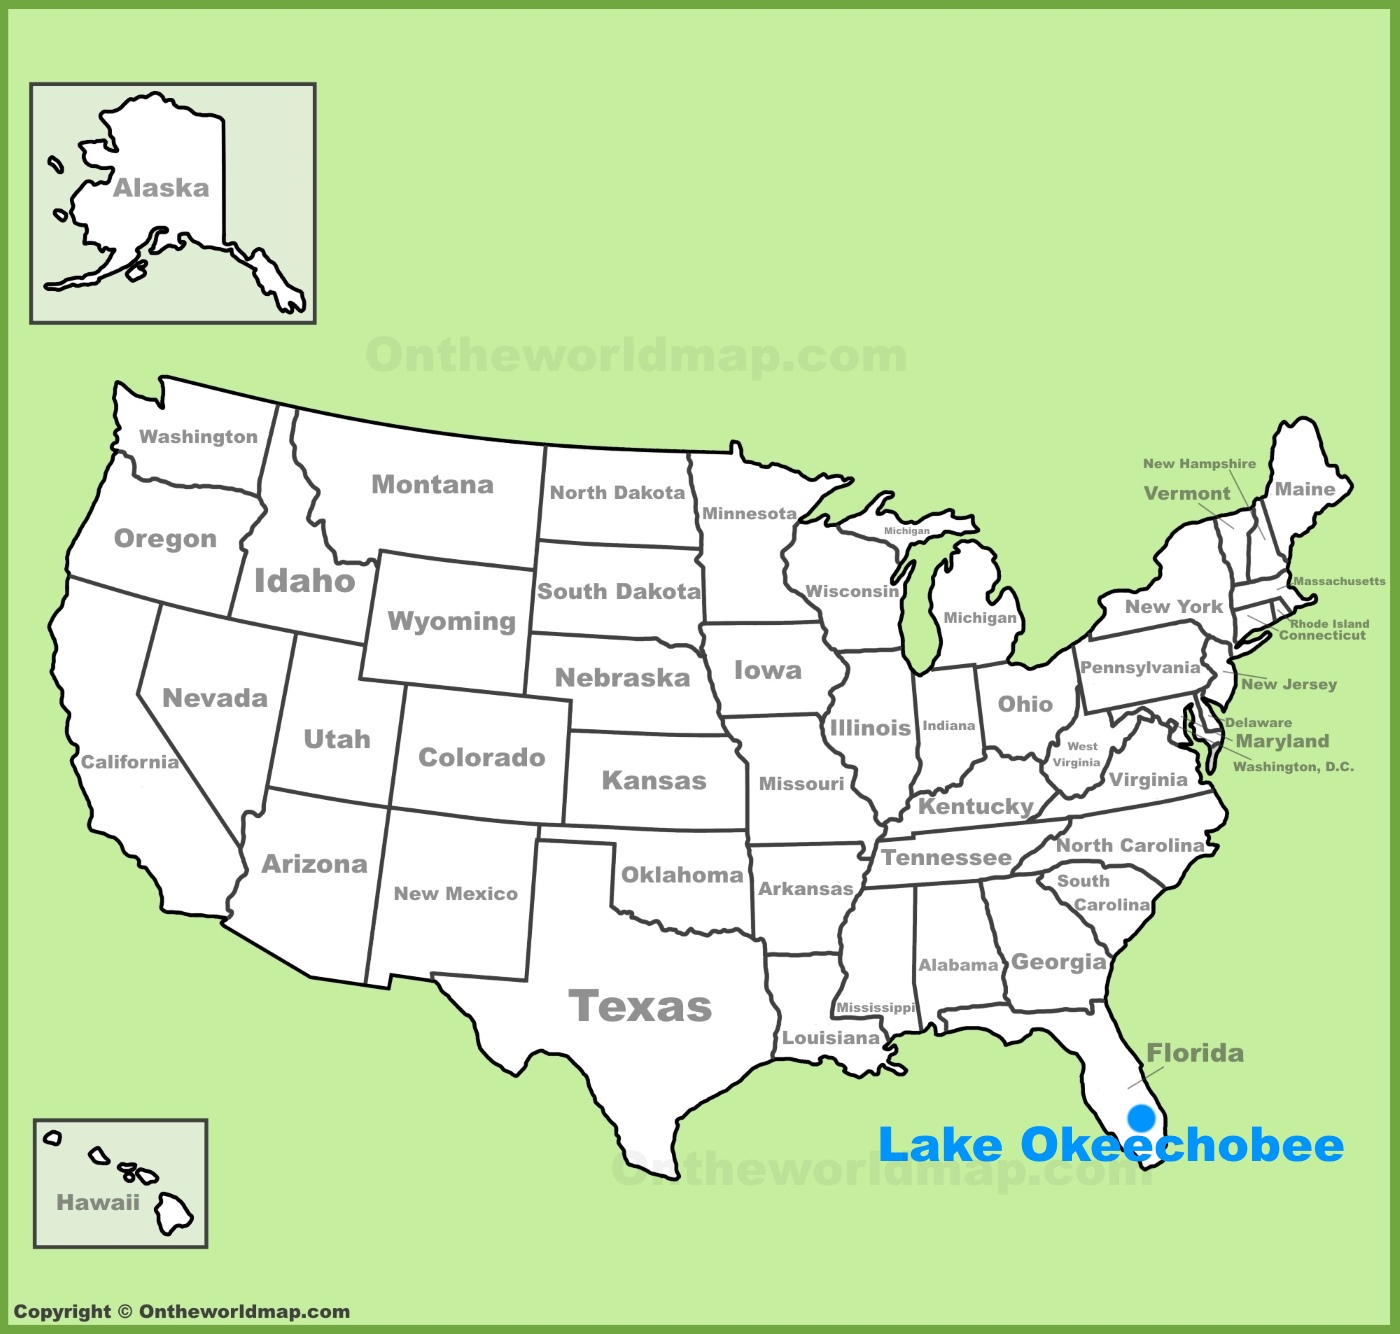 Lake Okeechobee Map Lake Okeechobee Maps | Maps of Lake Okeechobee Lake Okeechobee Map